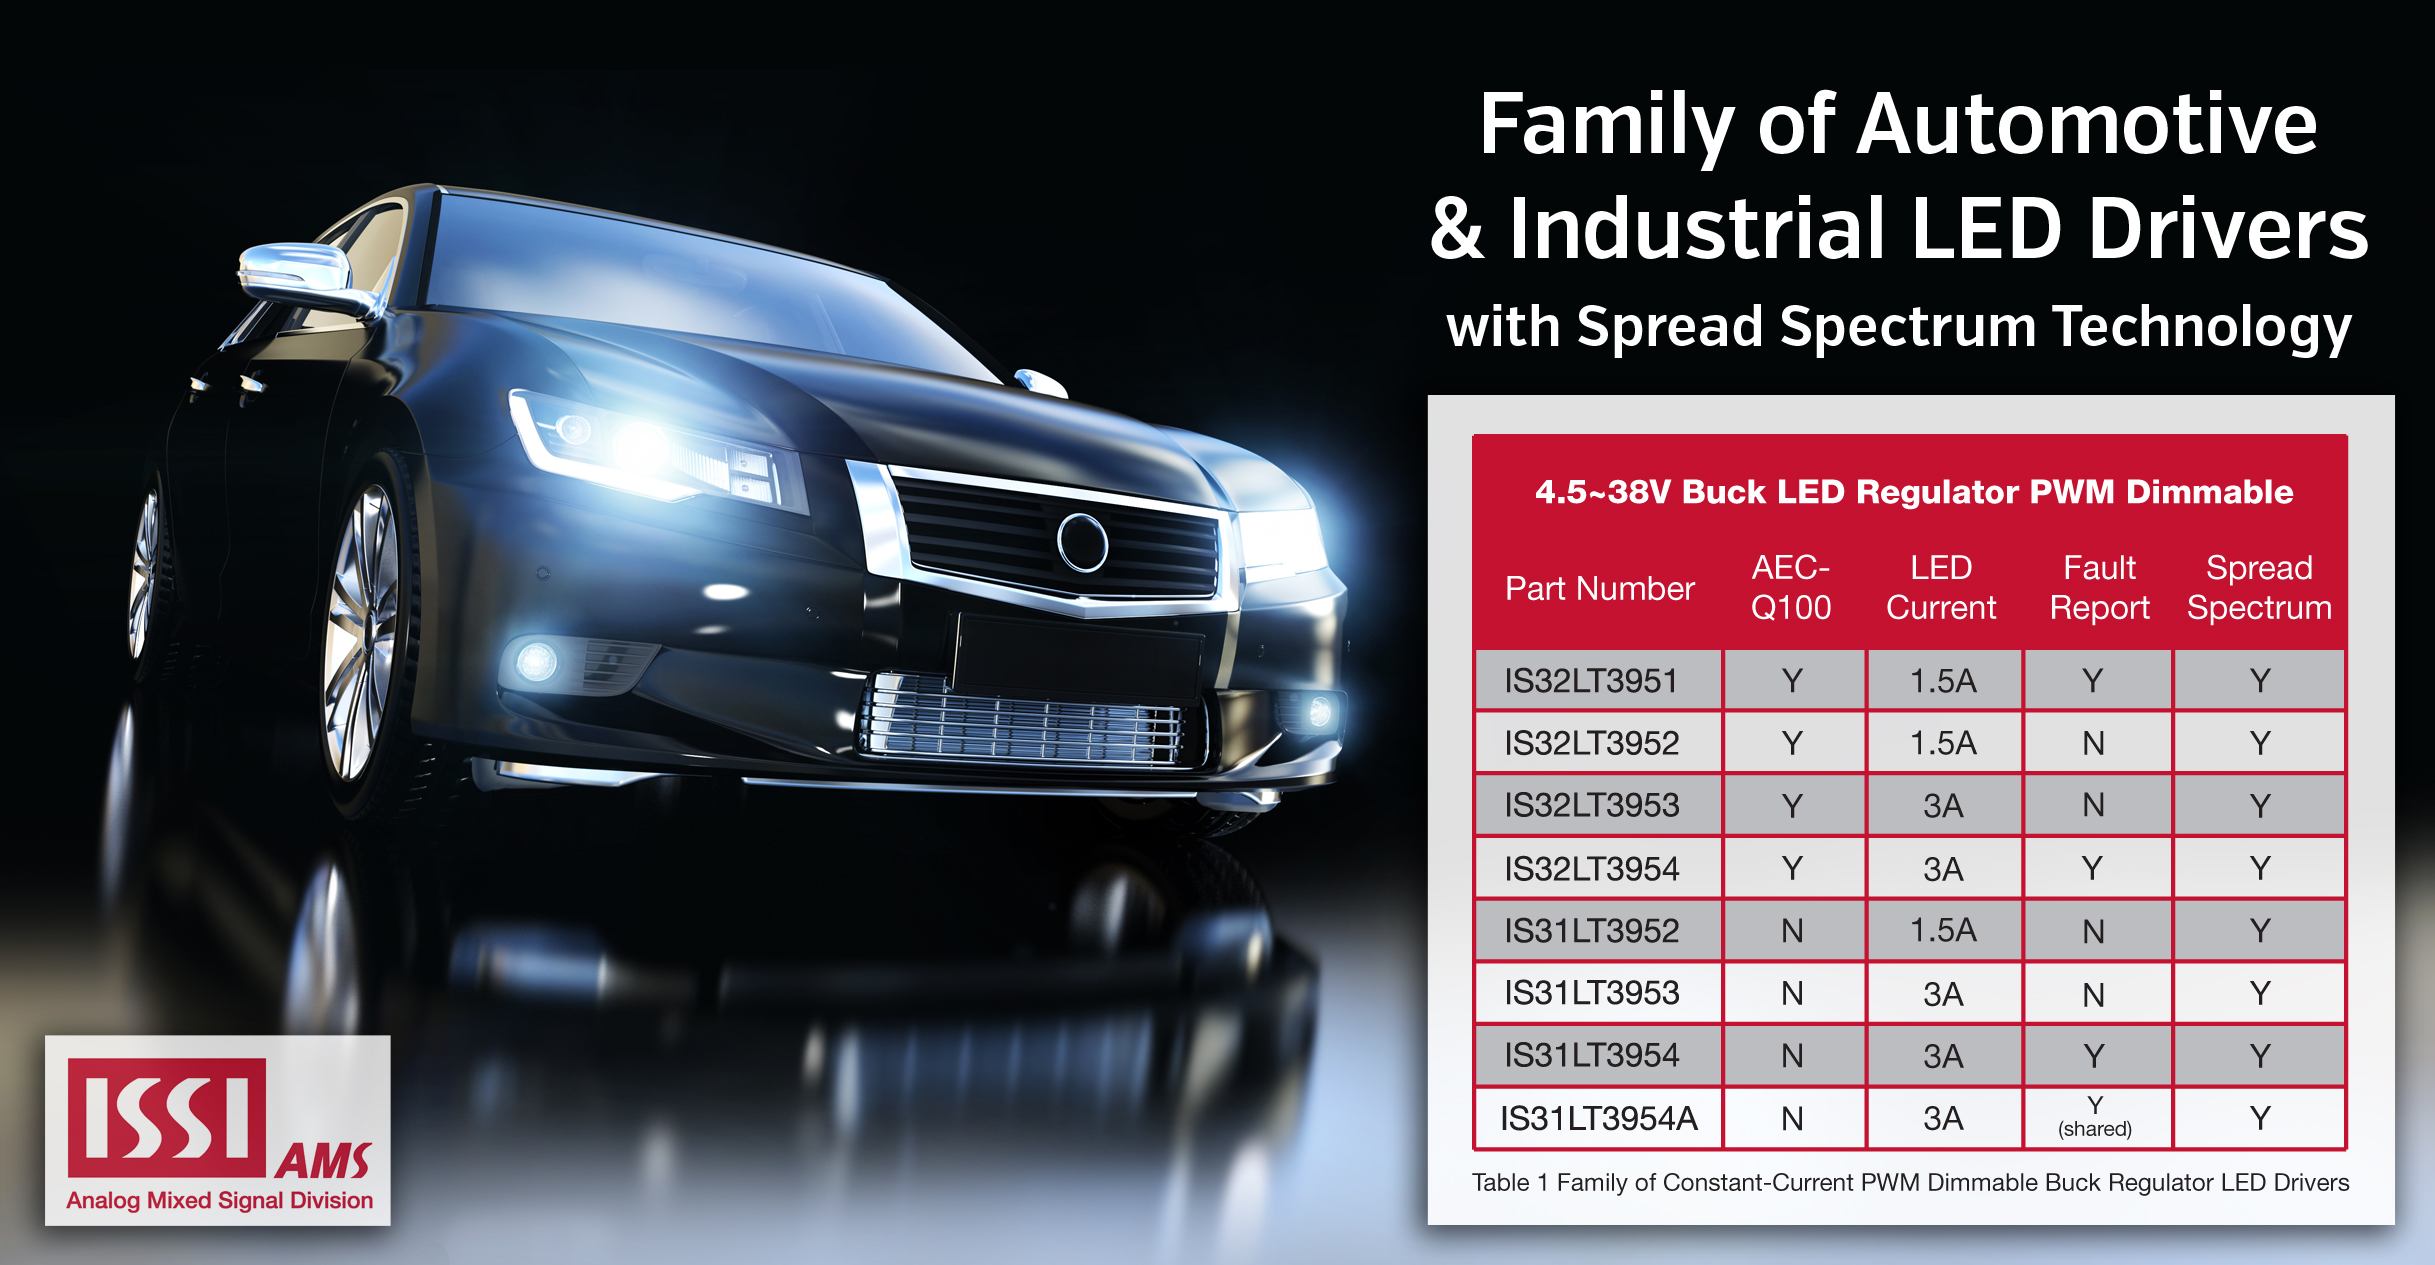 Family of Automotive & Industrial LED Drivers